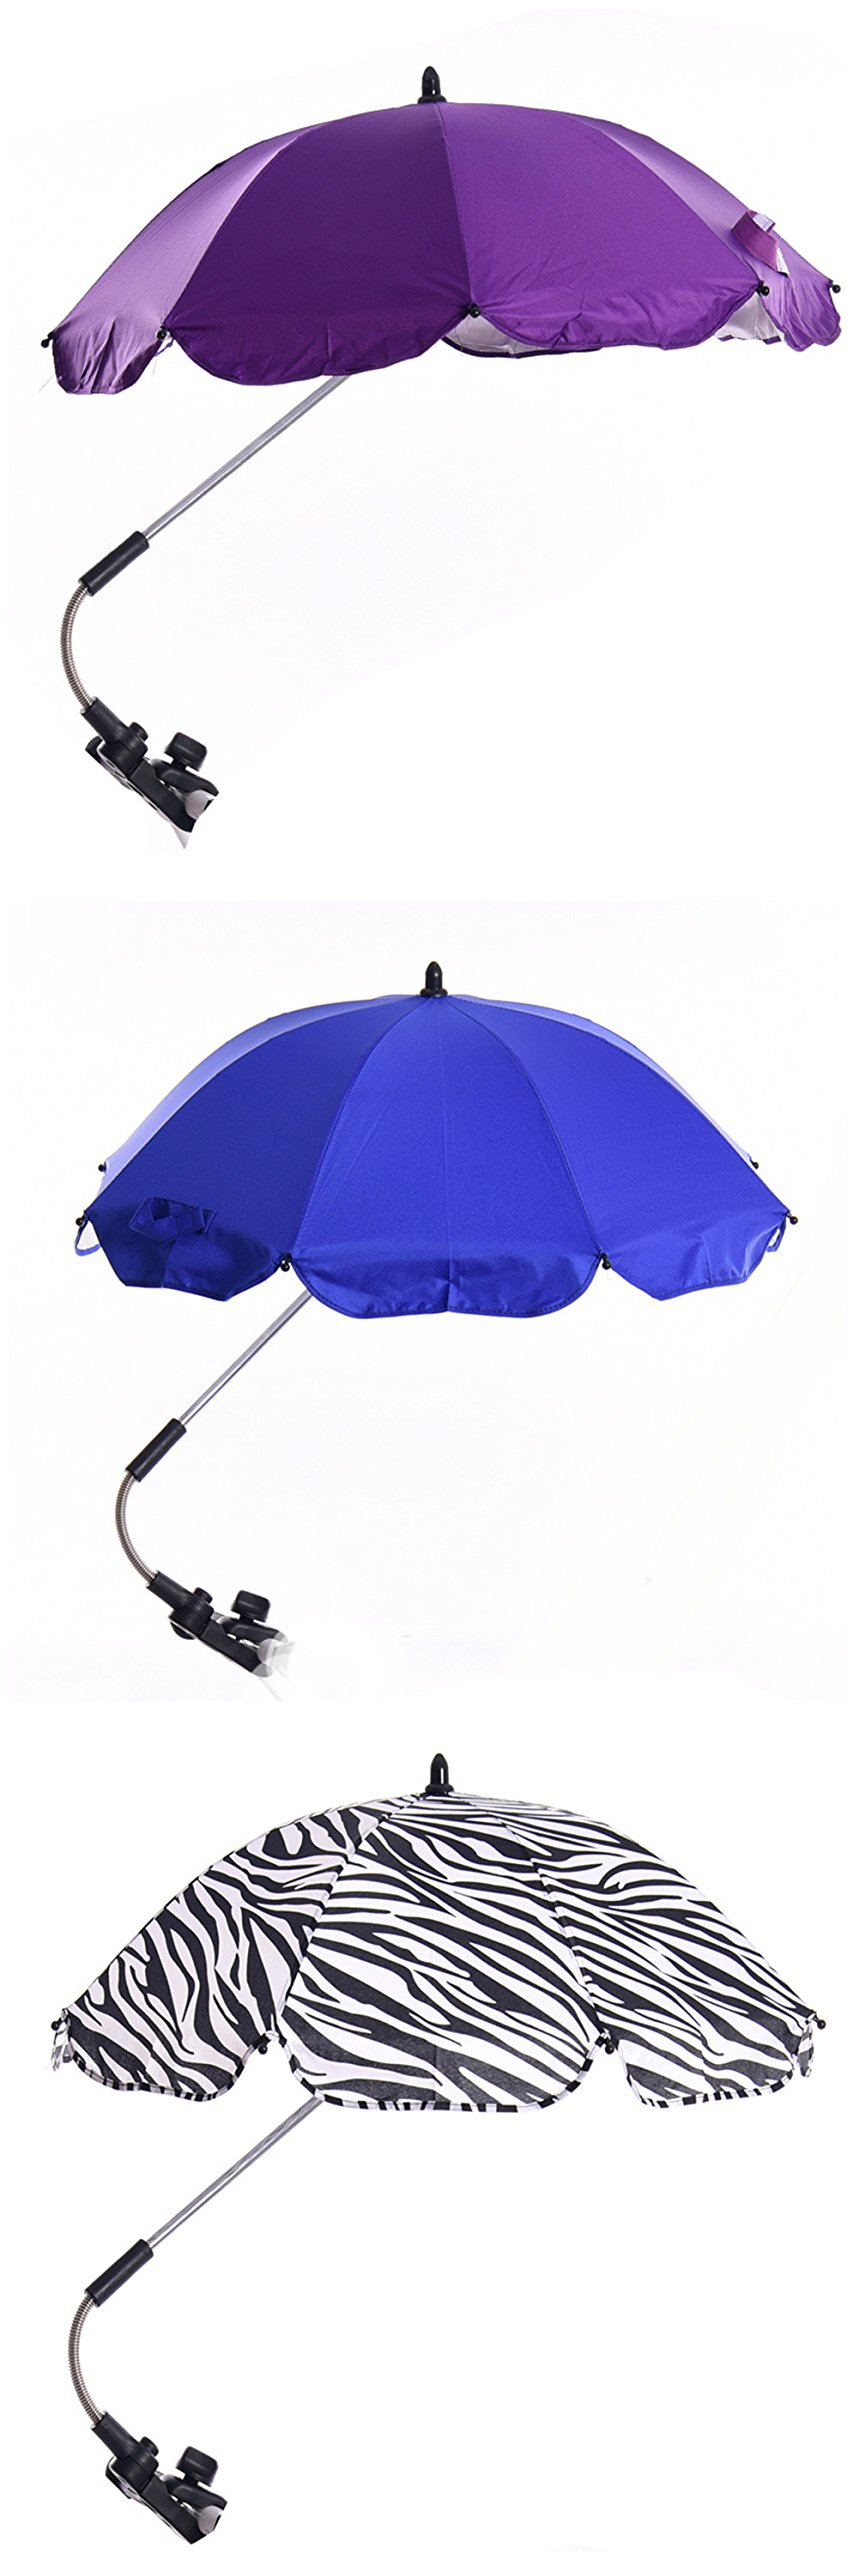 Katech Detachable Stroller UV Protection Umbrella Adjustable Baby Pram Pushchair Sun Shade Parasol with Universal Clamp by Katech (Image #7)